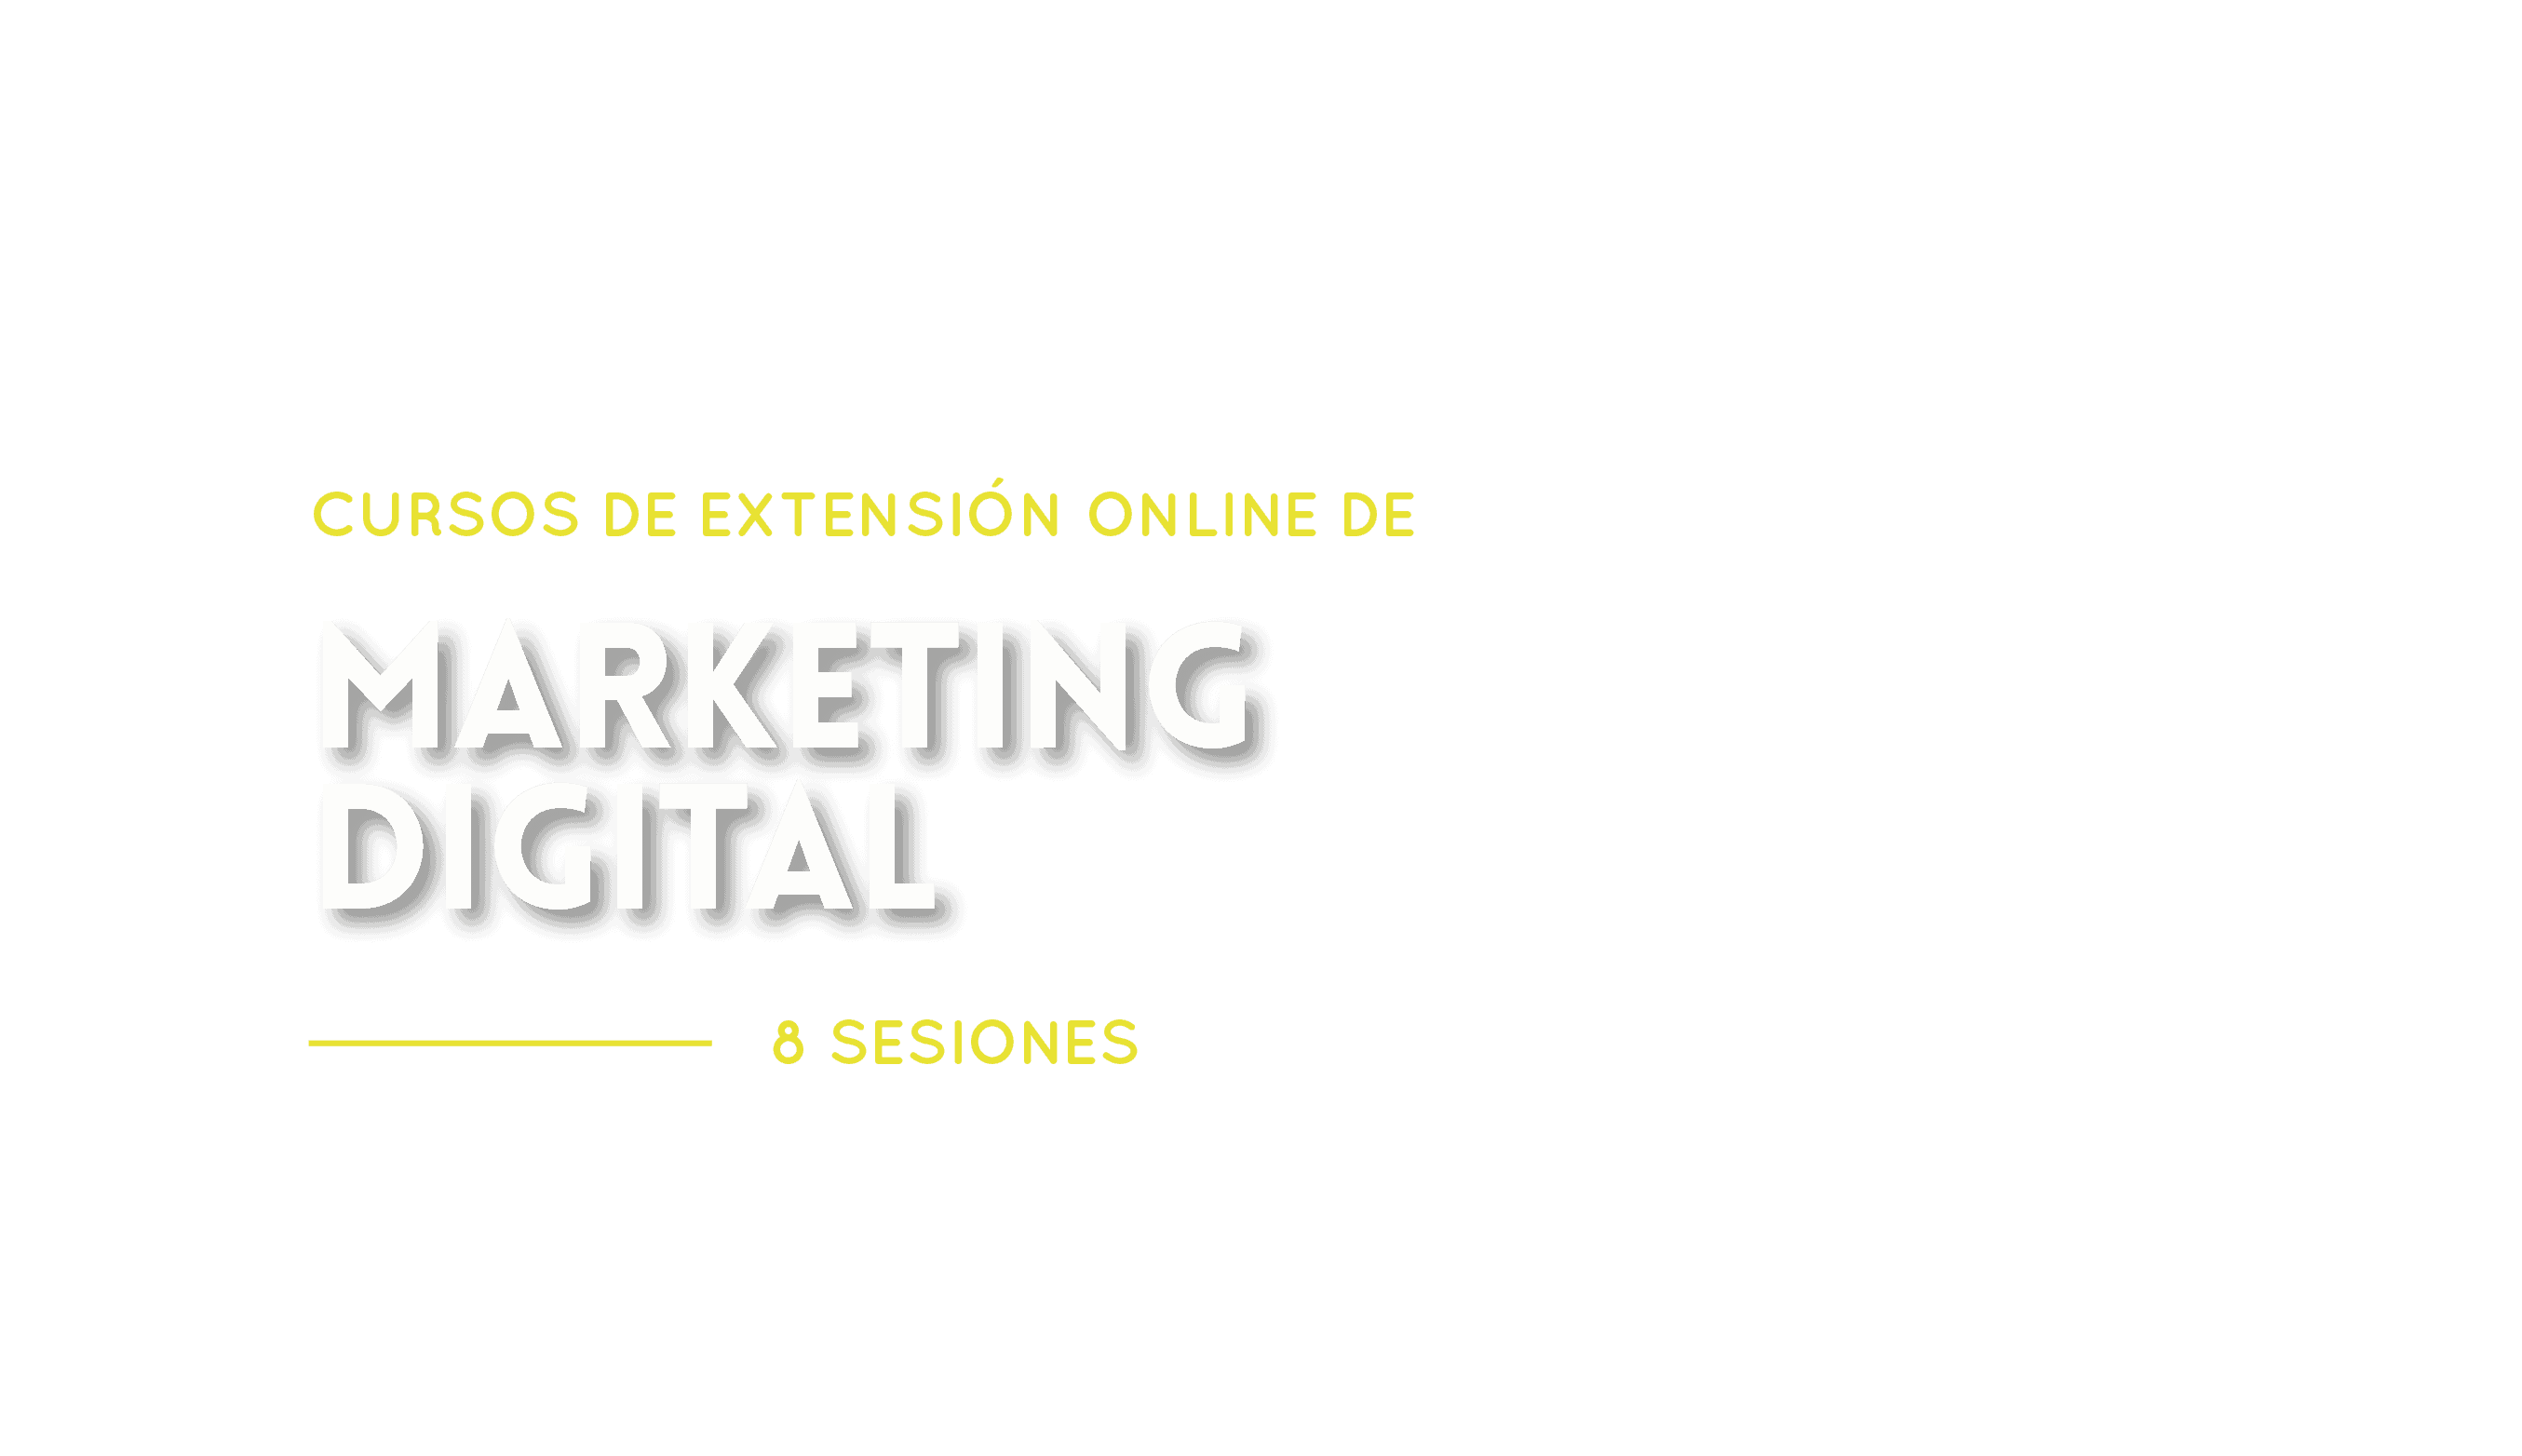 Cursos de Extensión Online de Marketing Digital